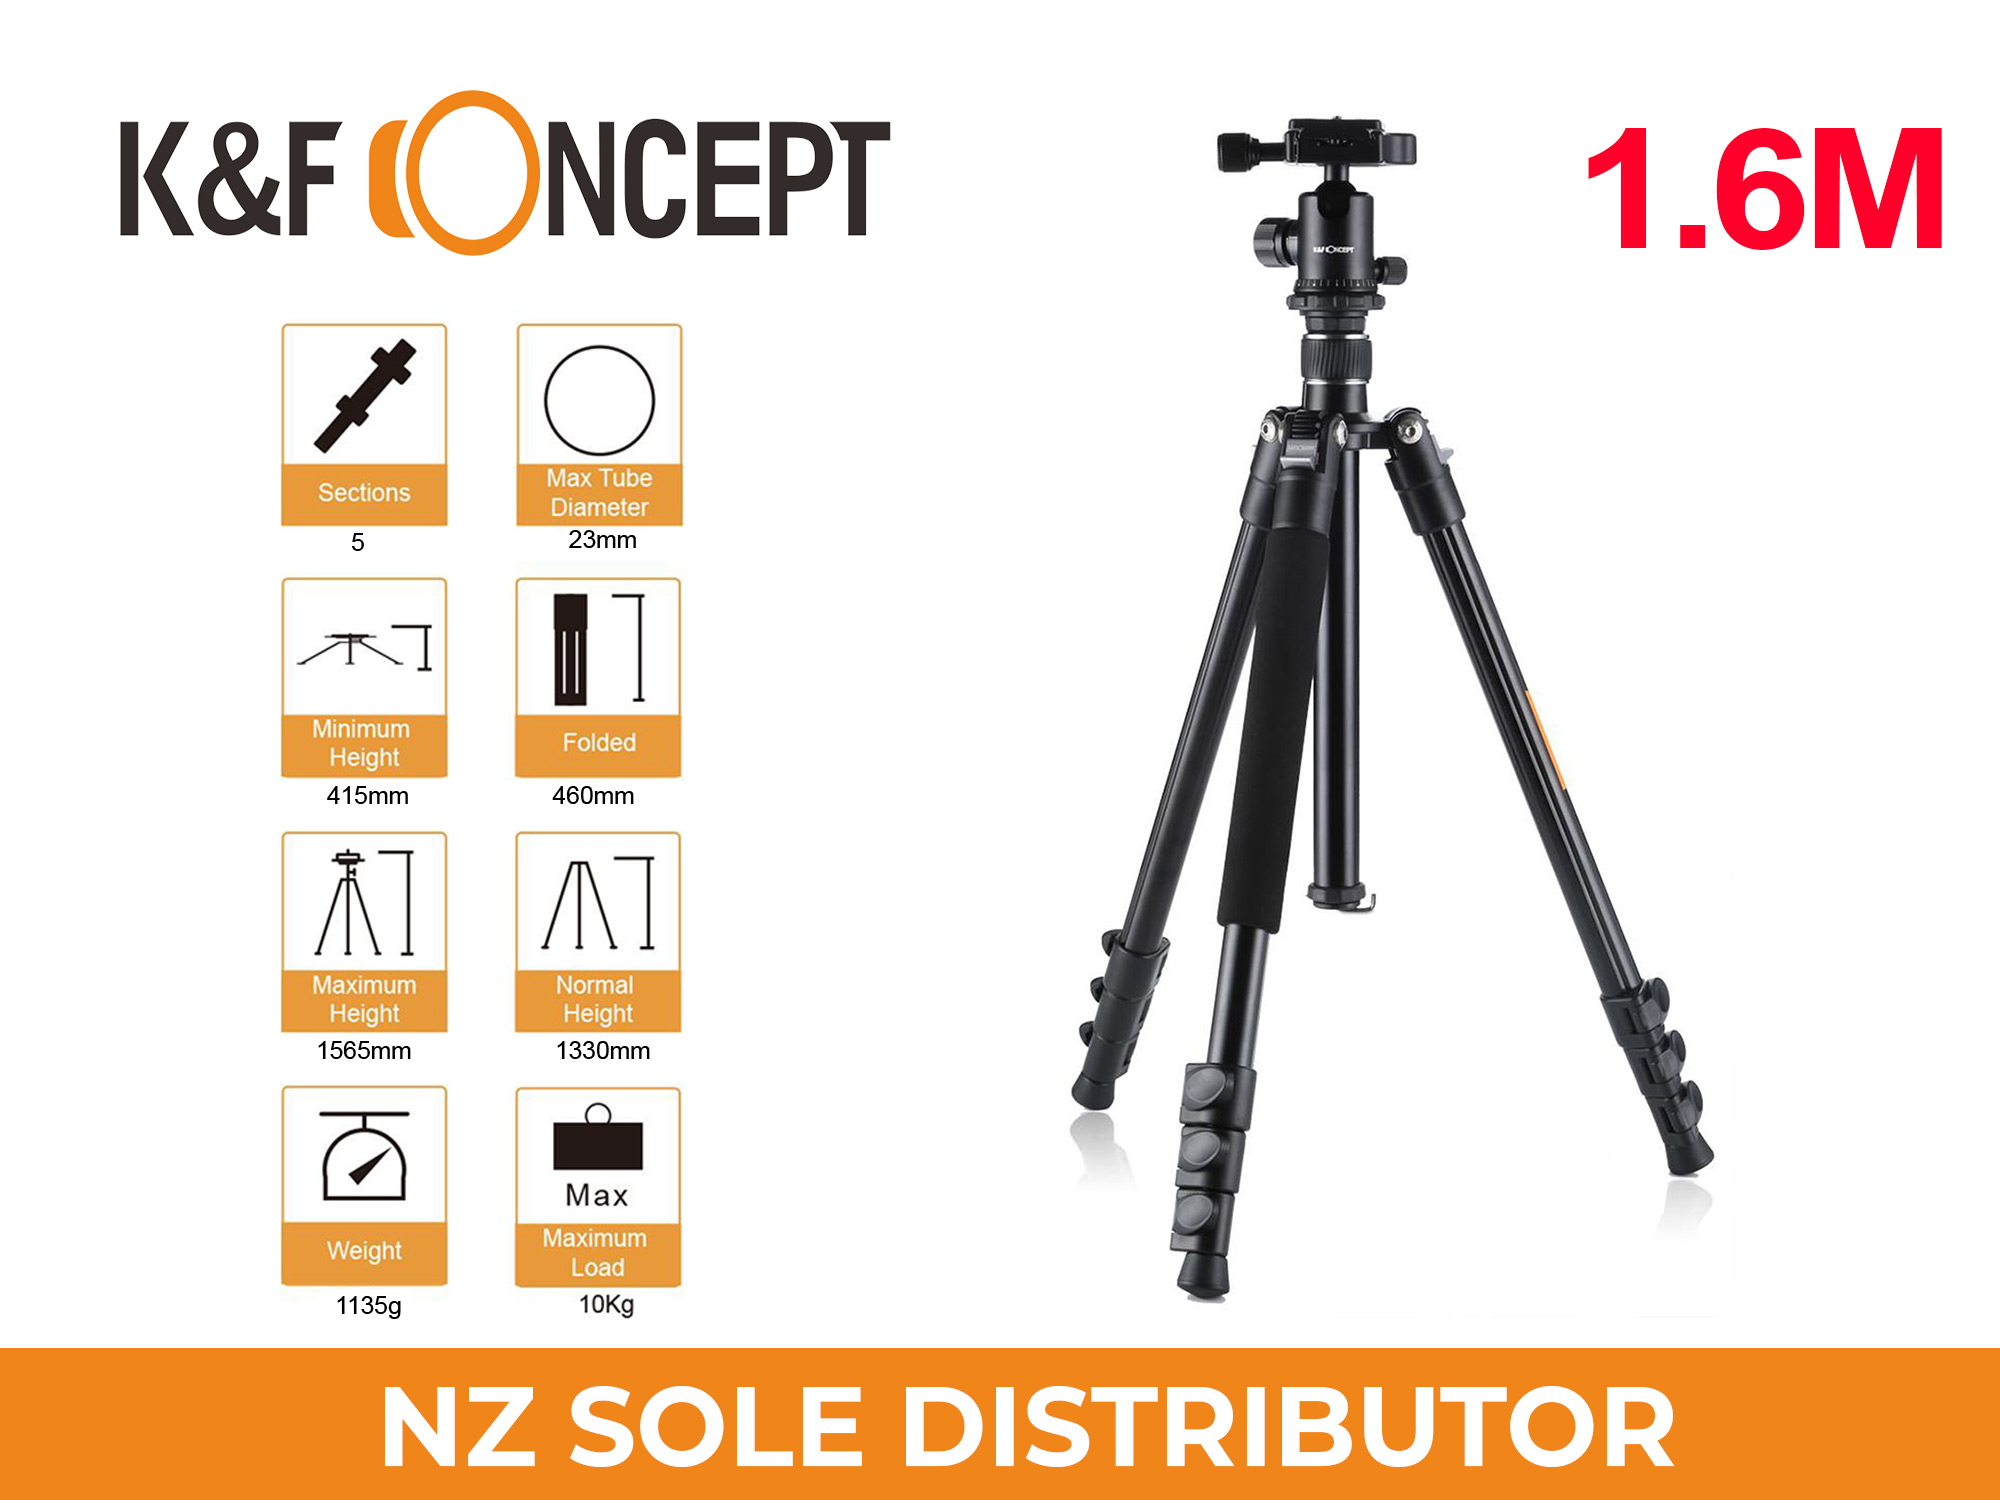 1.6m Travel Tripod TM2324 BLACK GOLD - K&F Concept TM2324Gold